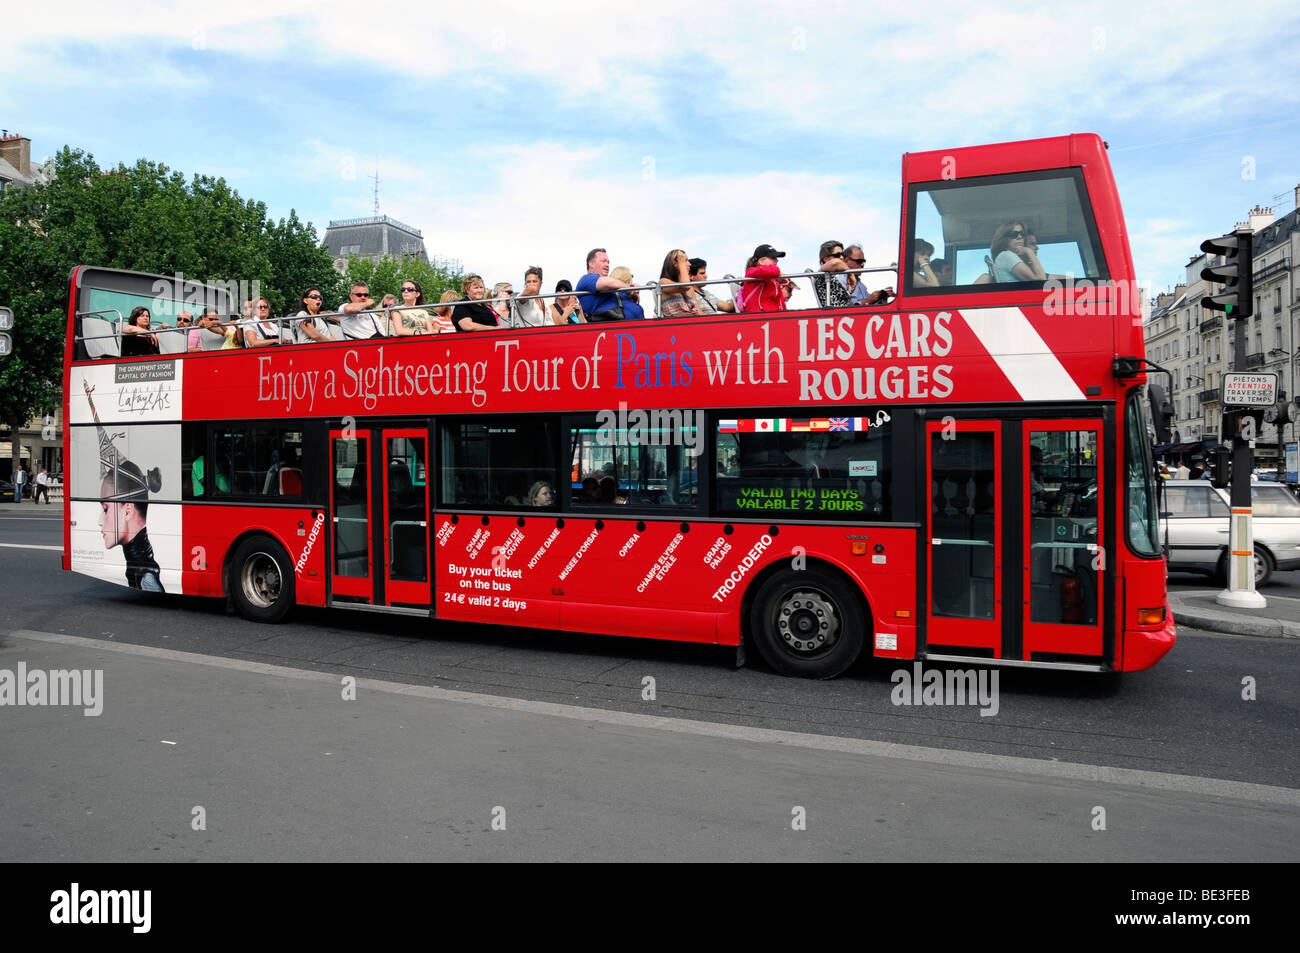 city tour in an open sightseeing bus paris france europe stock photo royalty free image. Black Bedroom Furniture Sets. Home Design Ideas